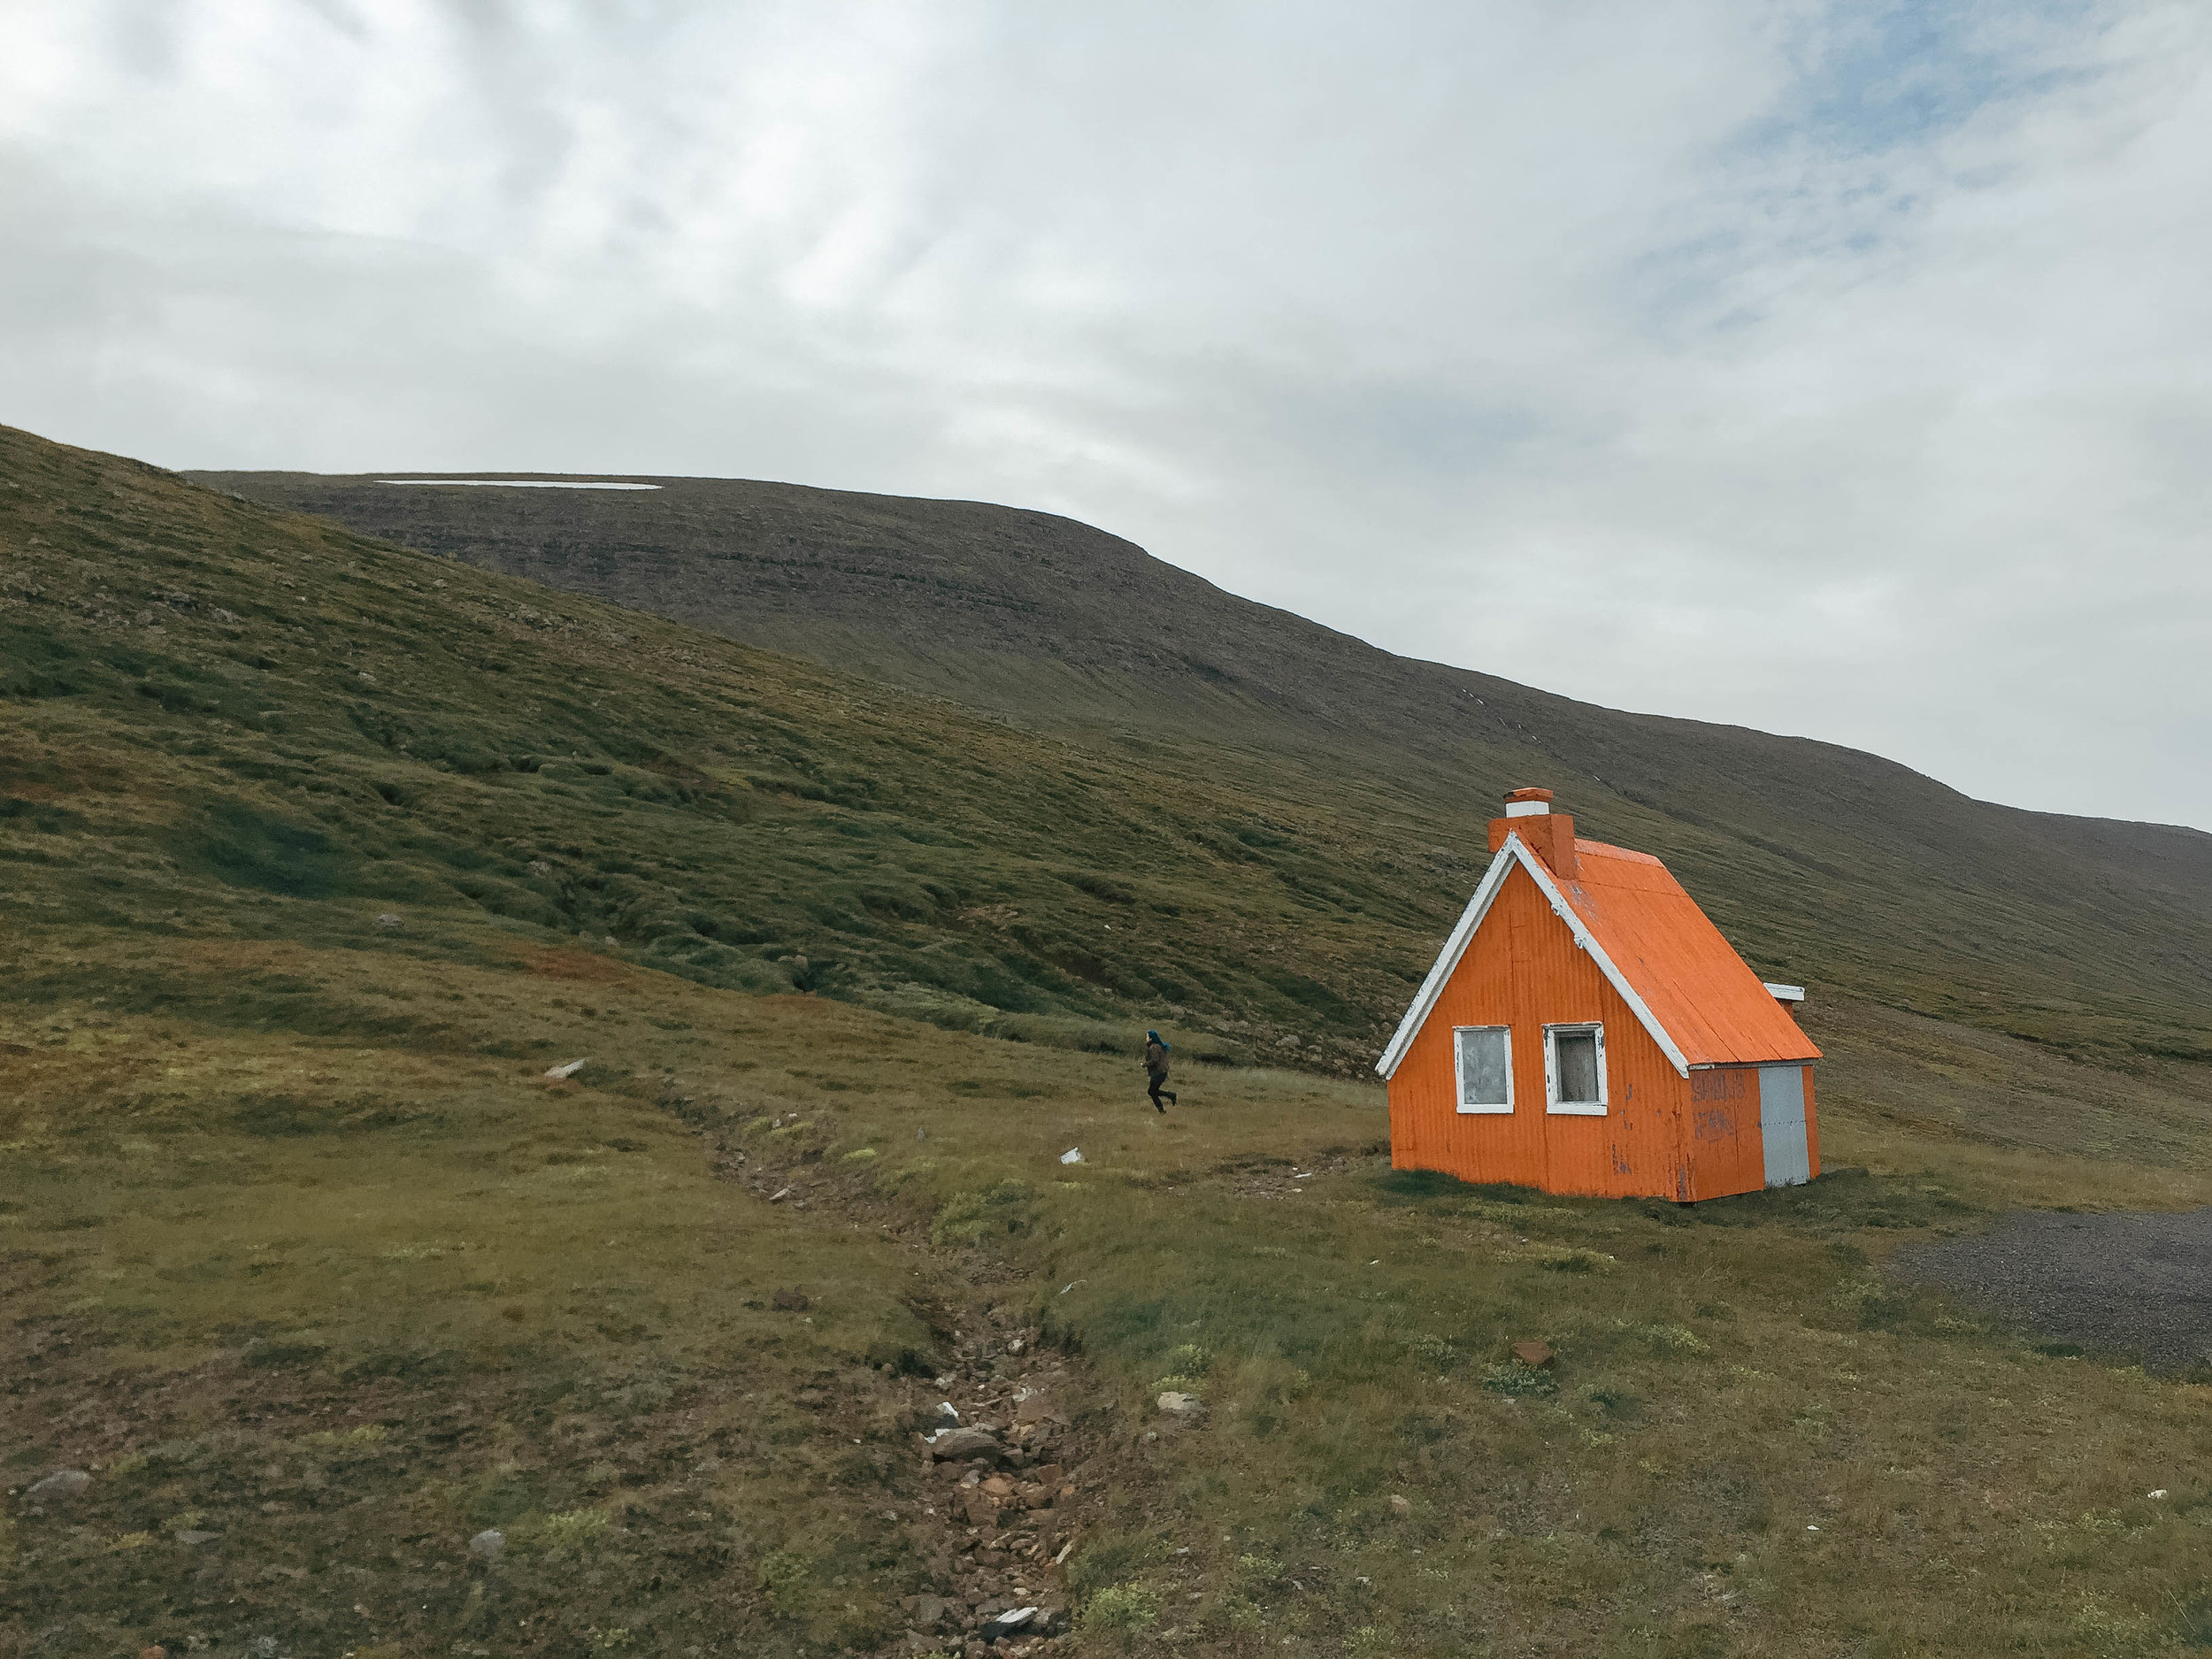 Roadtrippin' Iceland - Golden Circle Route / 1.5 weeks / iphone 6